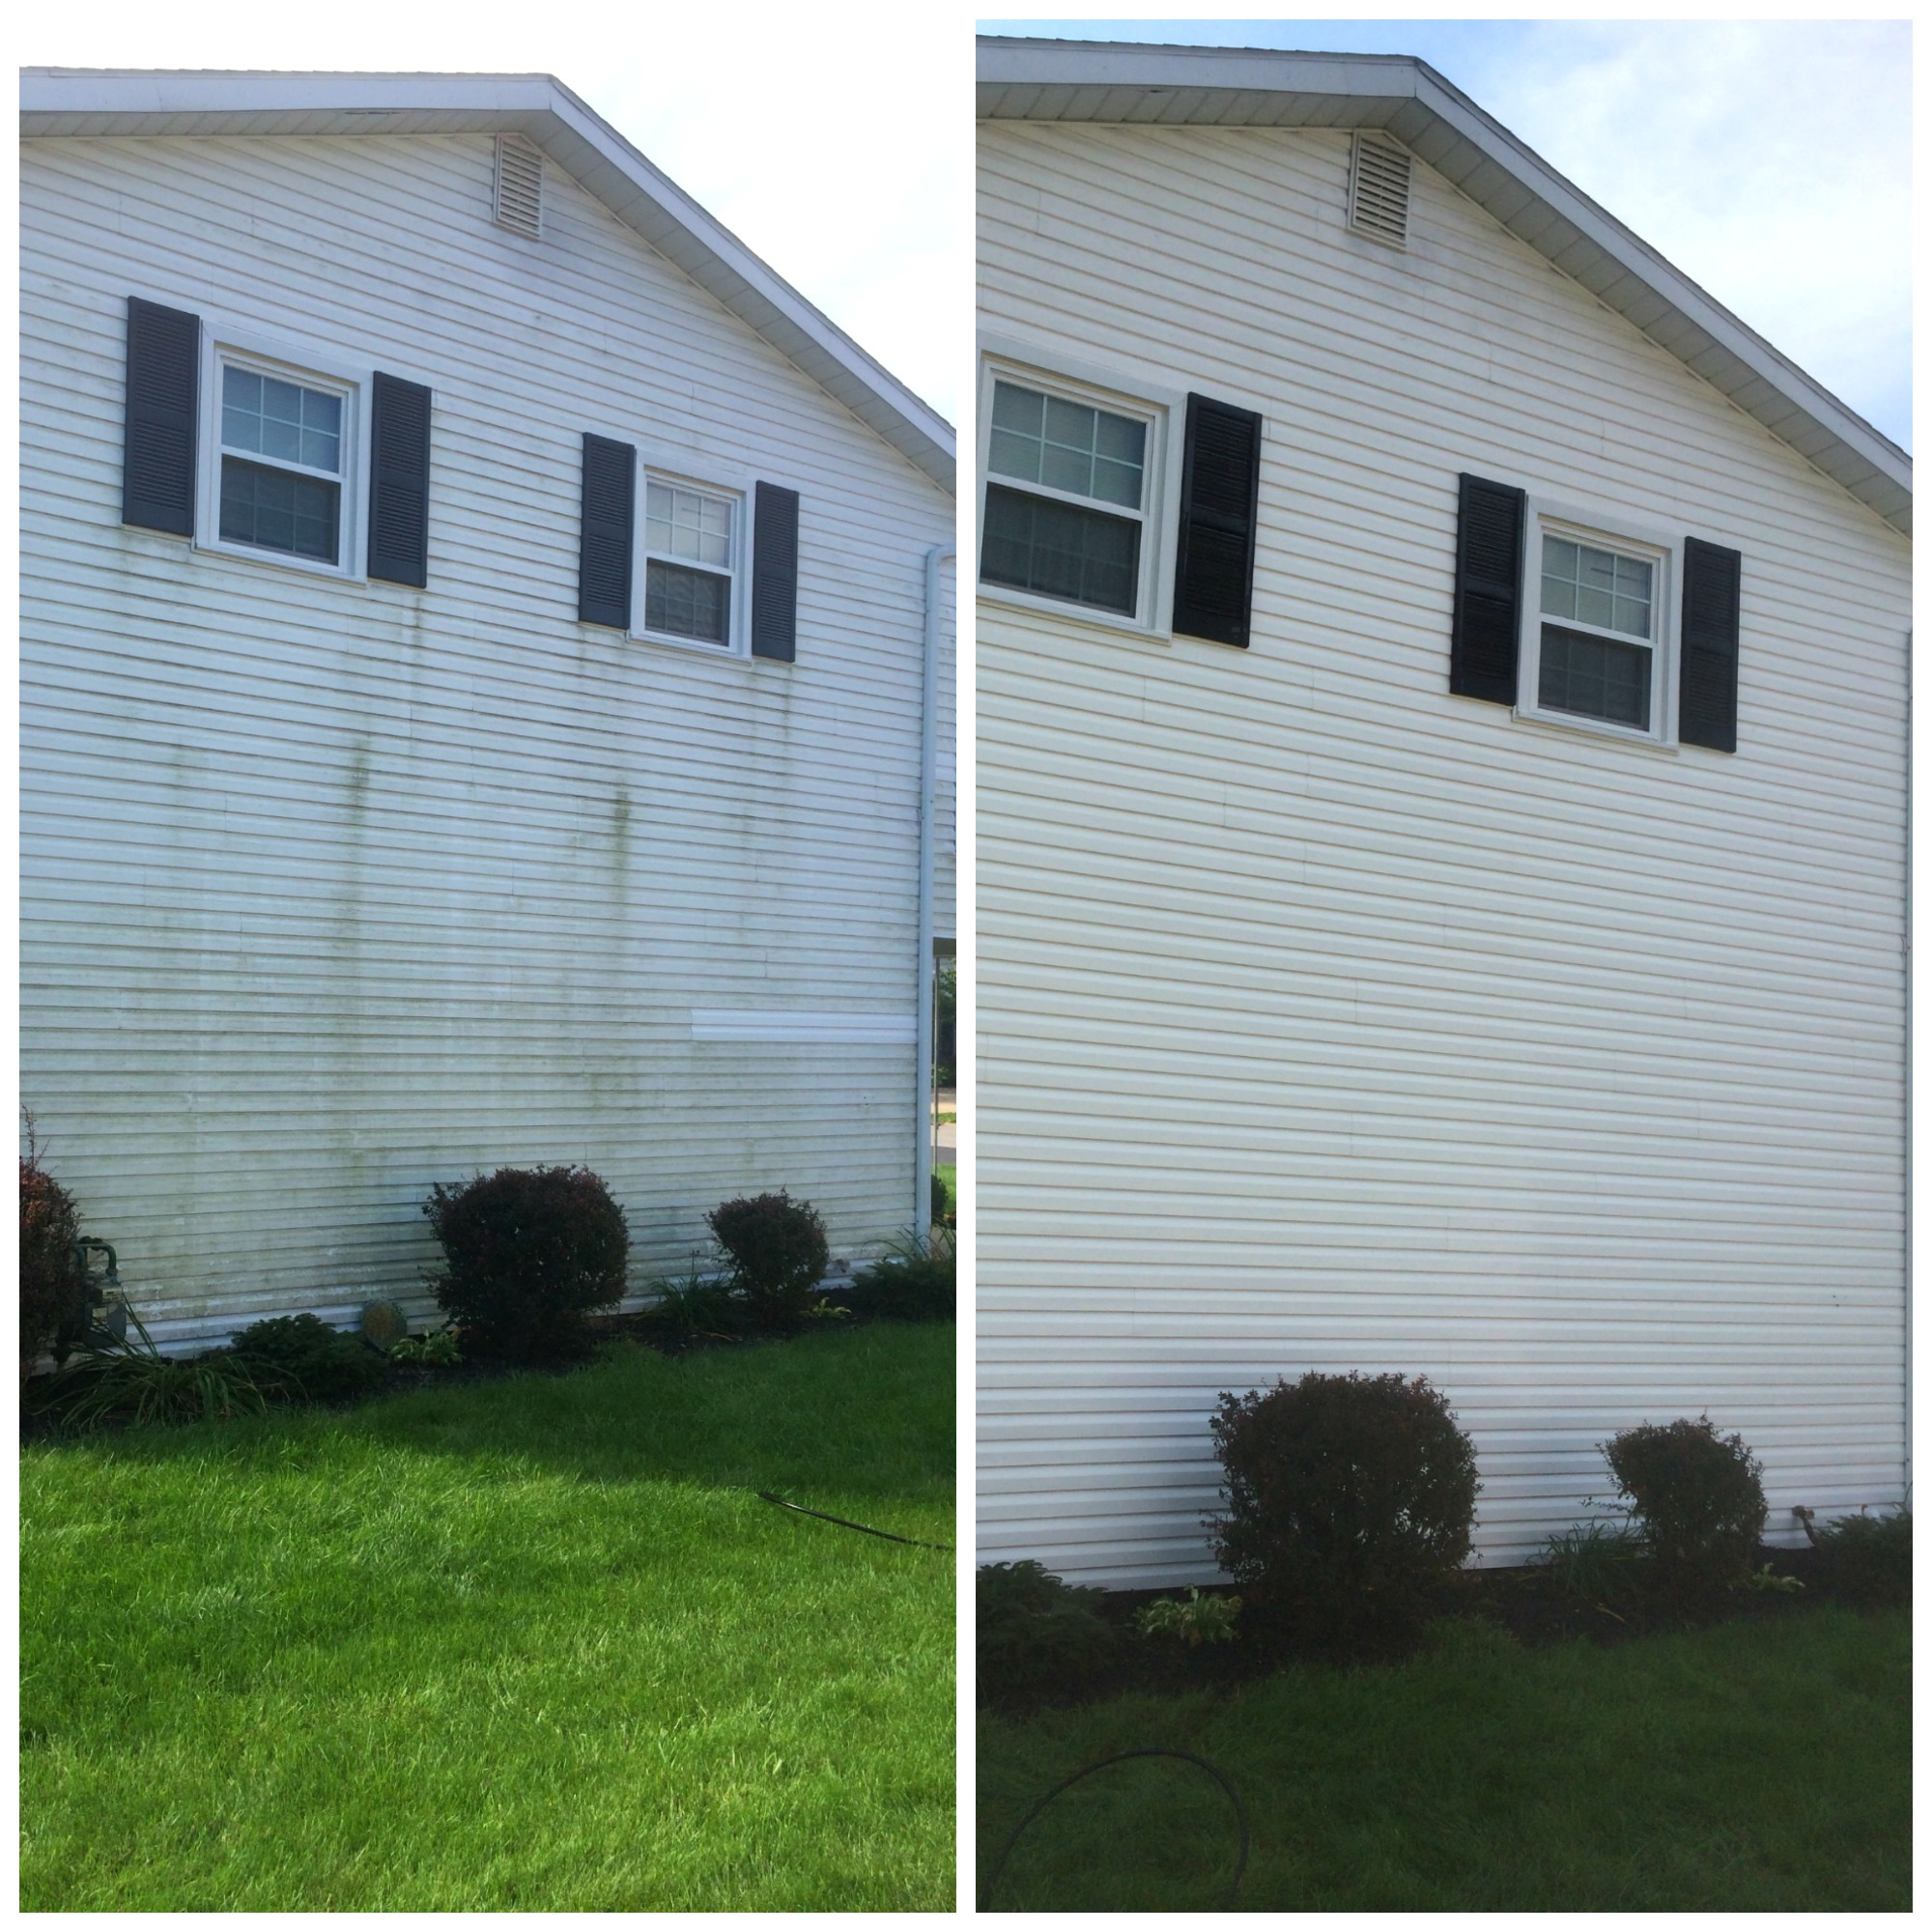 Anderson Pressure Washing, houes washing before and after